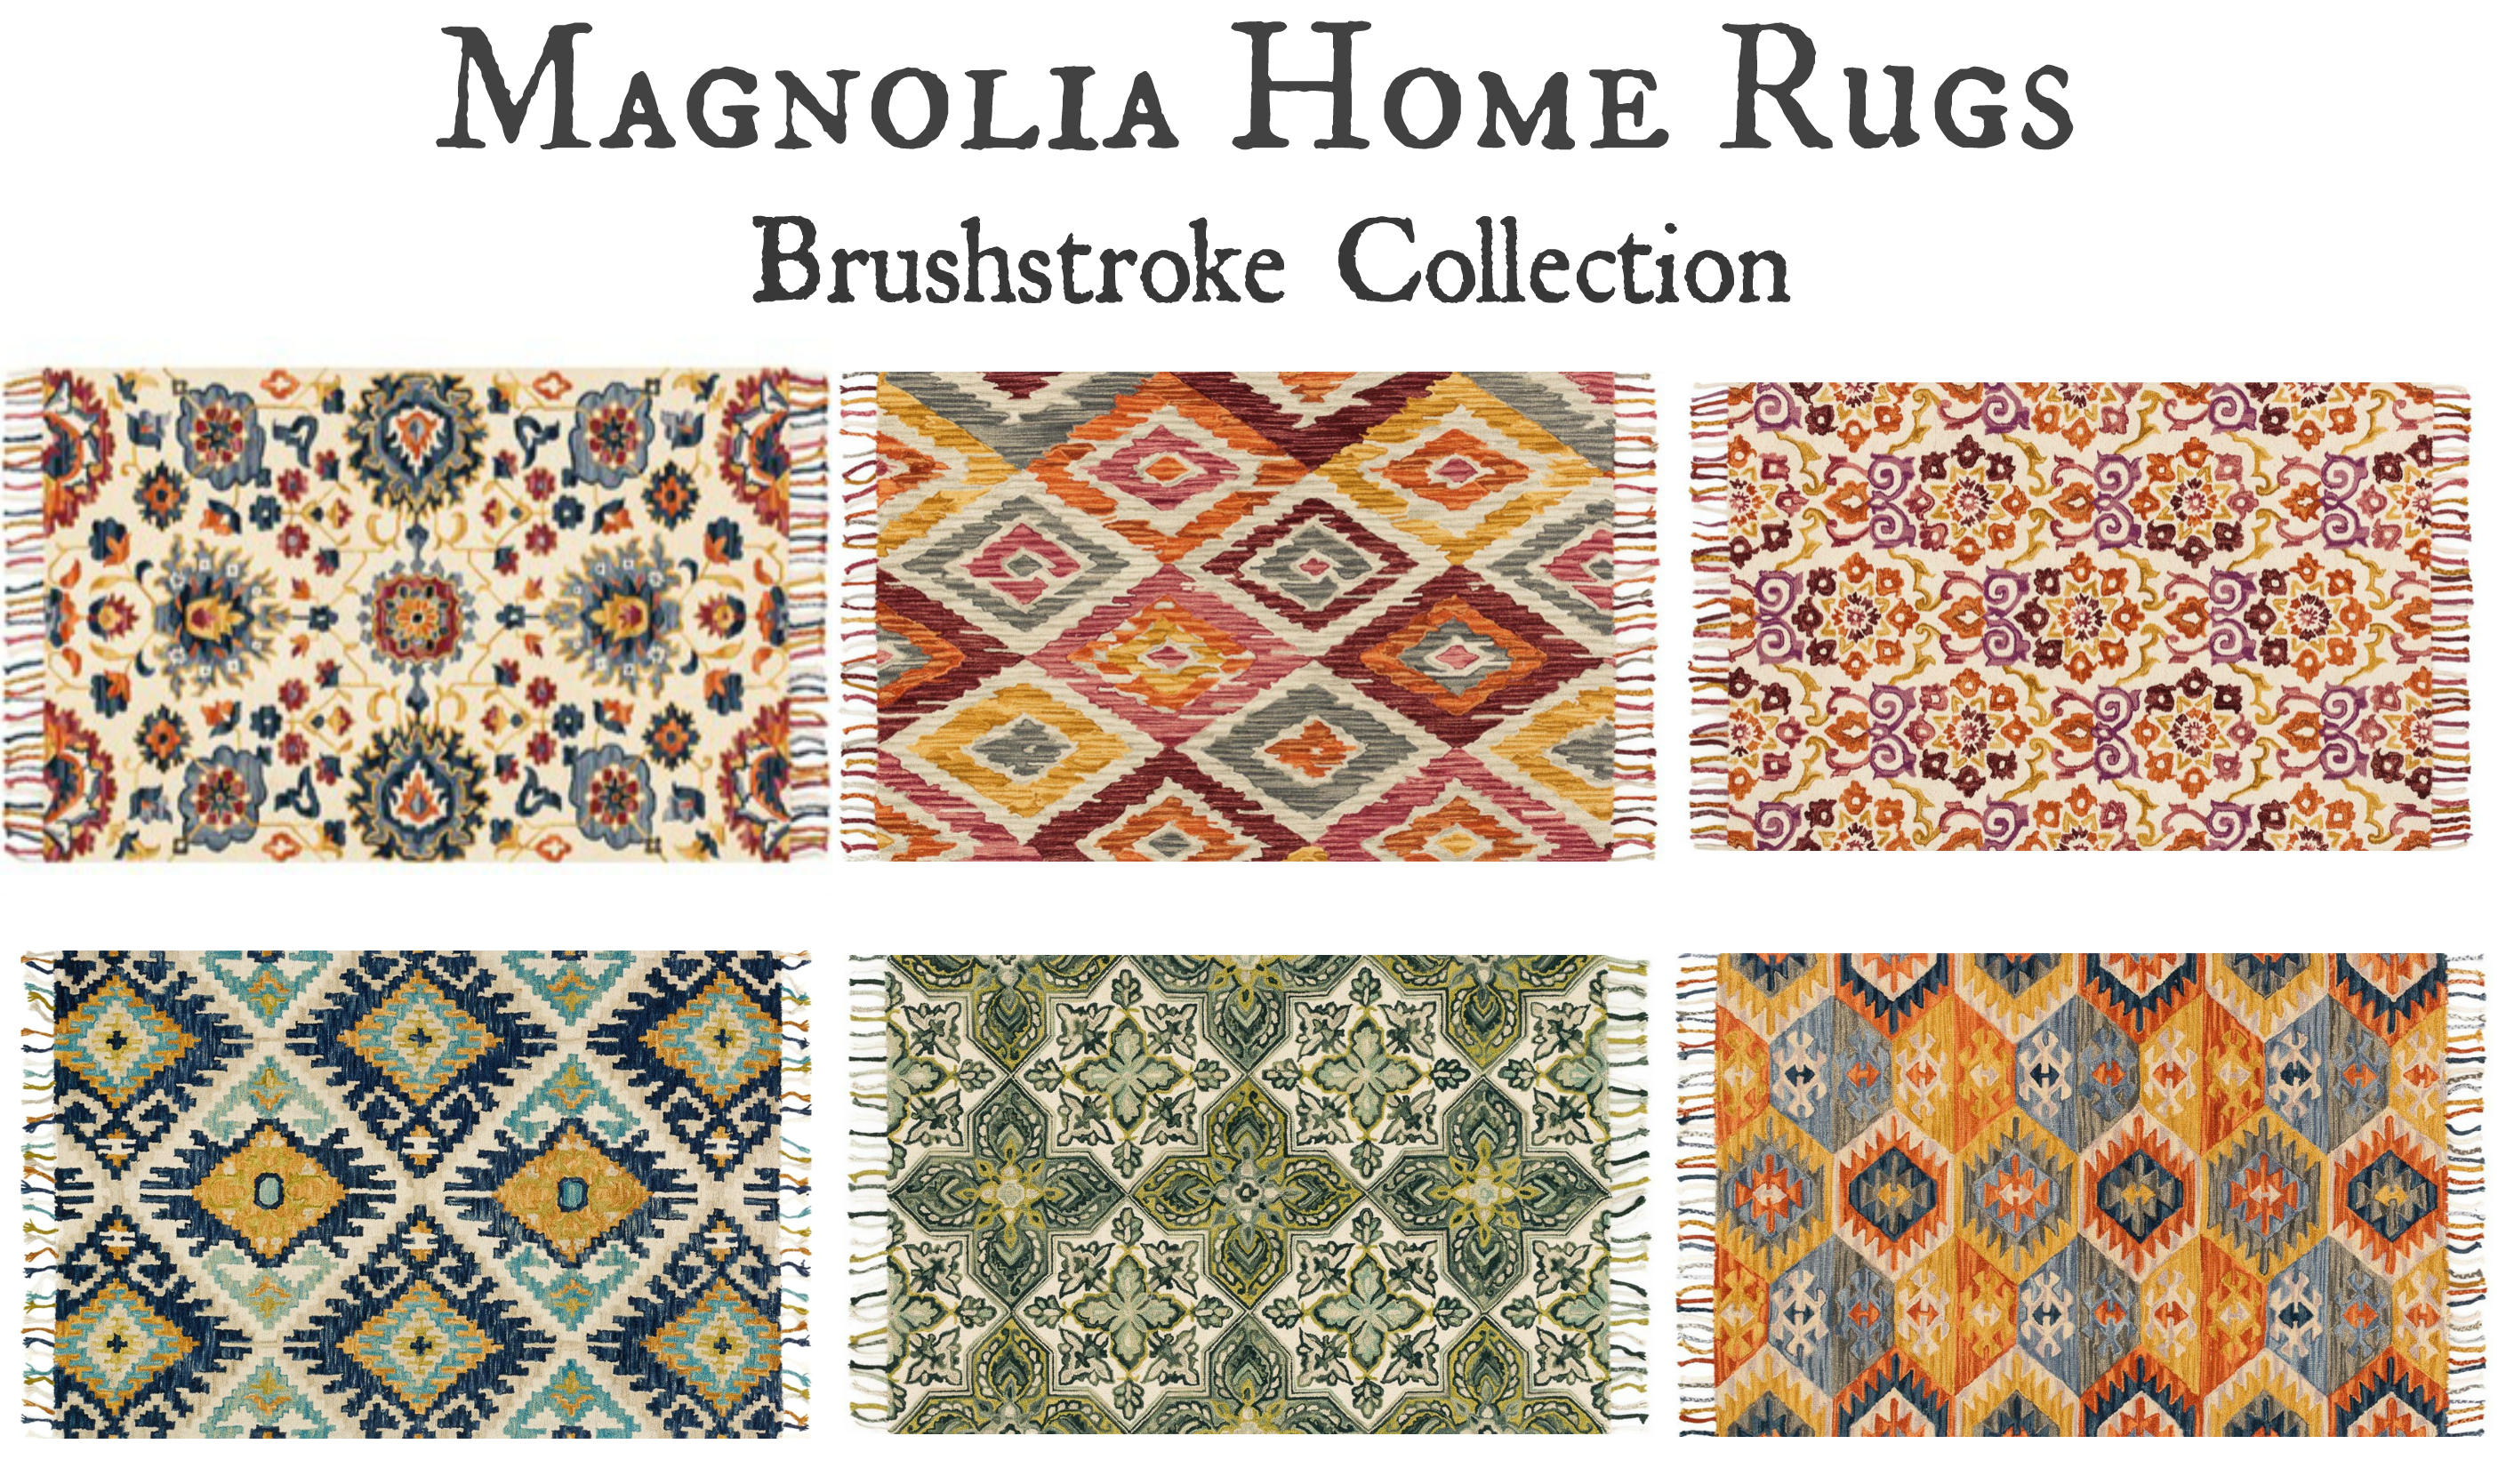 Magnolia Home Rugs Brushstroke Collection